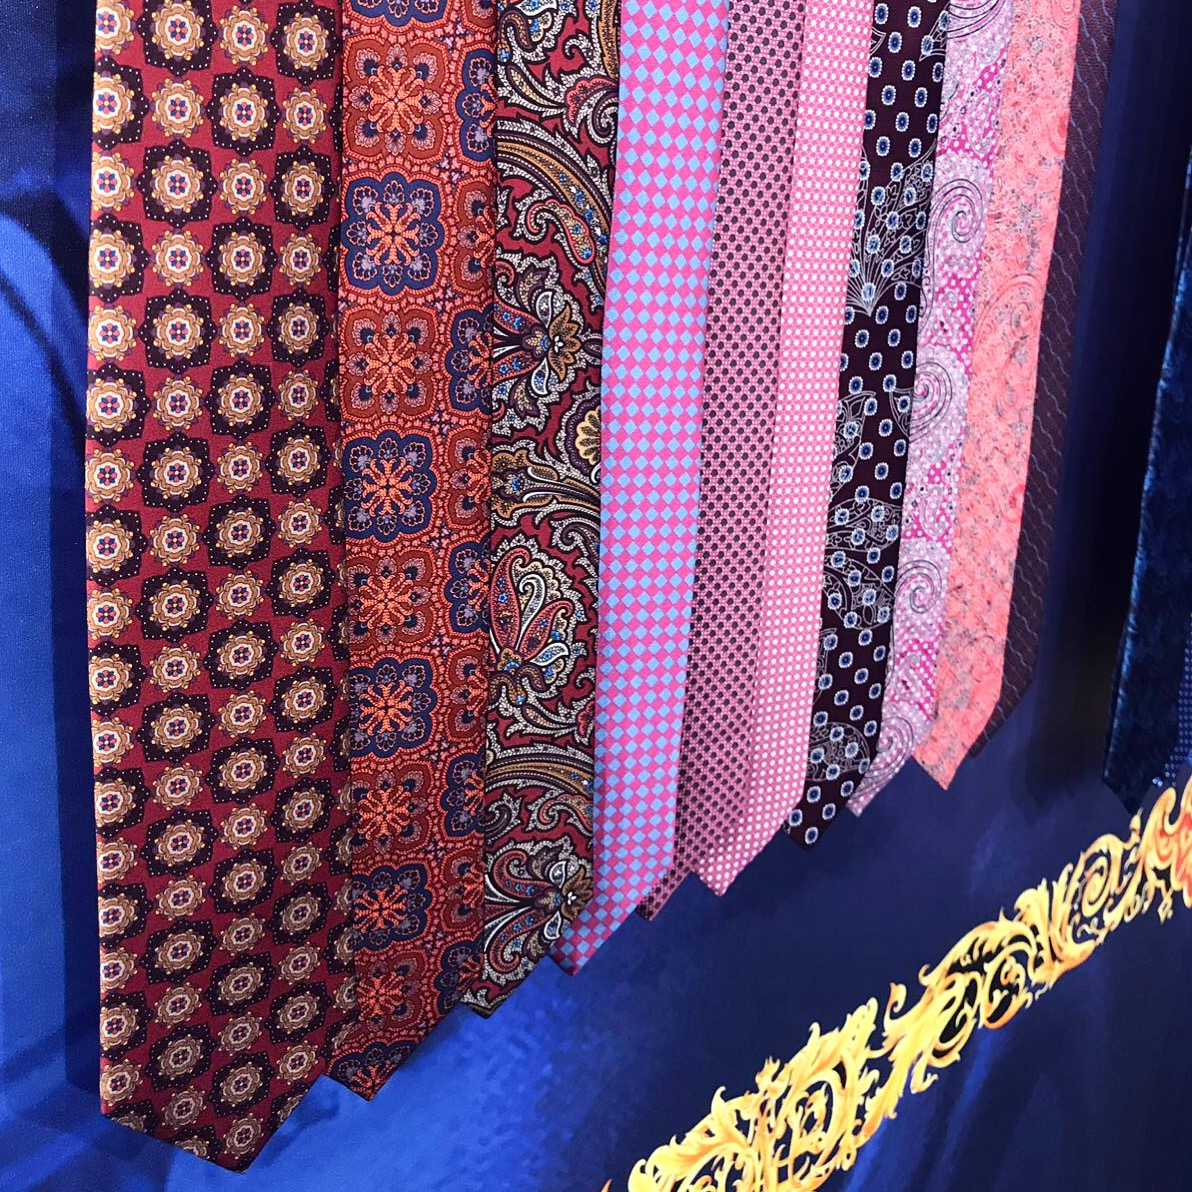 Close up of ties on exhibition display.